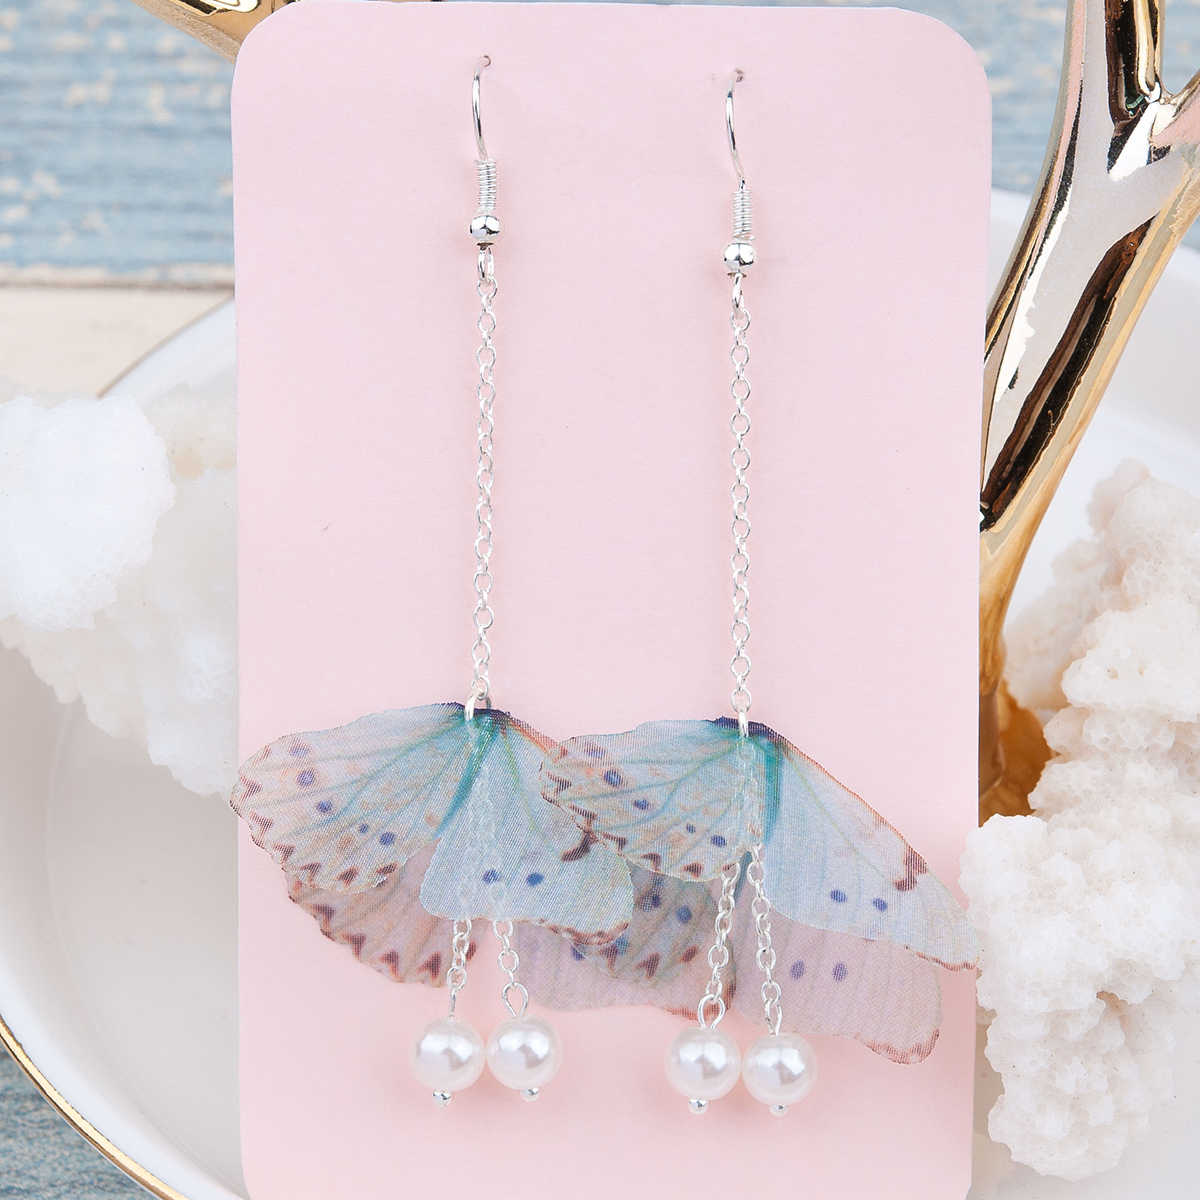 Doreen Box Organza Ethereal Butterfly Earrings Silver color Green Blue Created Pearl Fashion Earrings For Women 80mm long,1 Pair